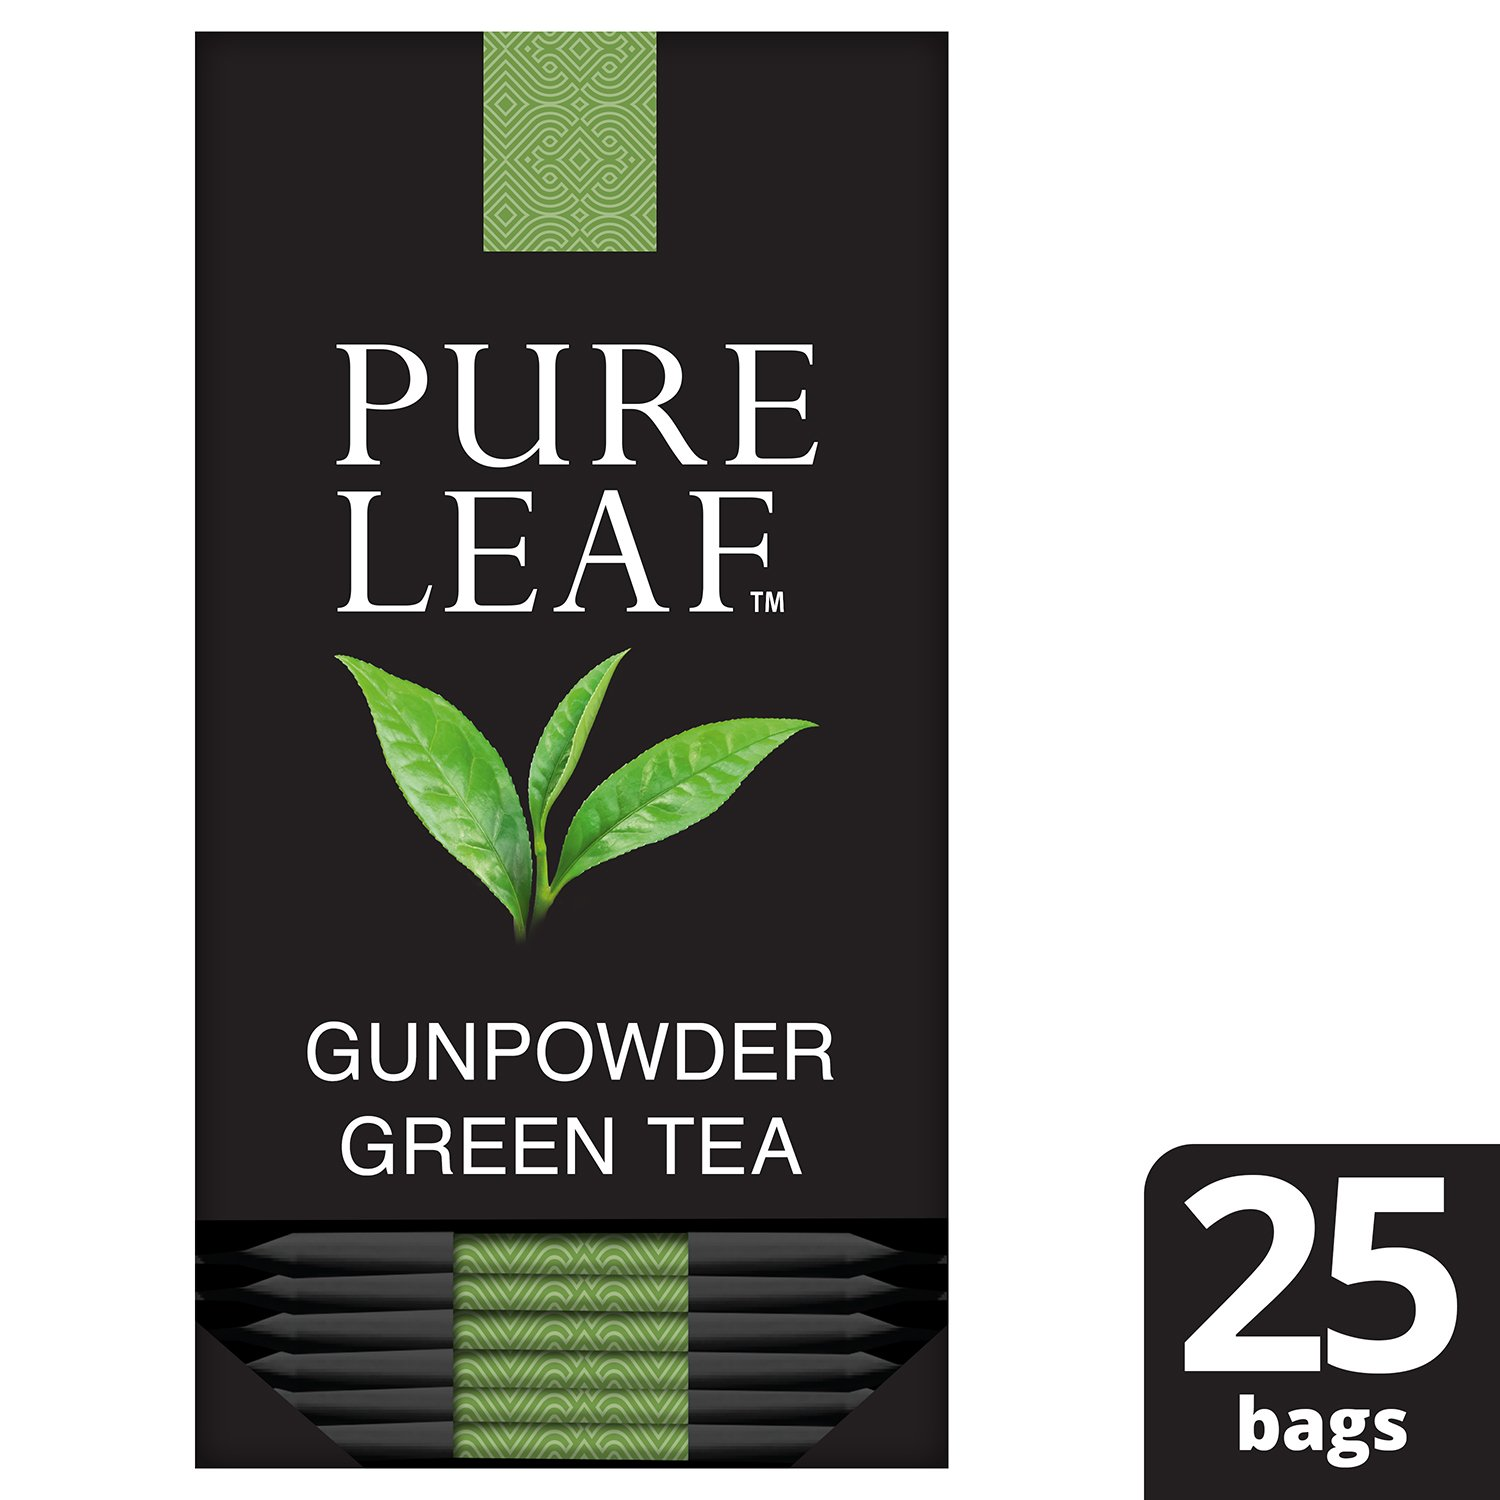 Pure Leaf Gunpowder Green Tea -